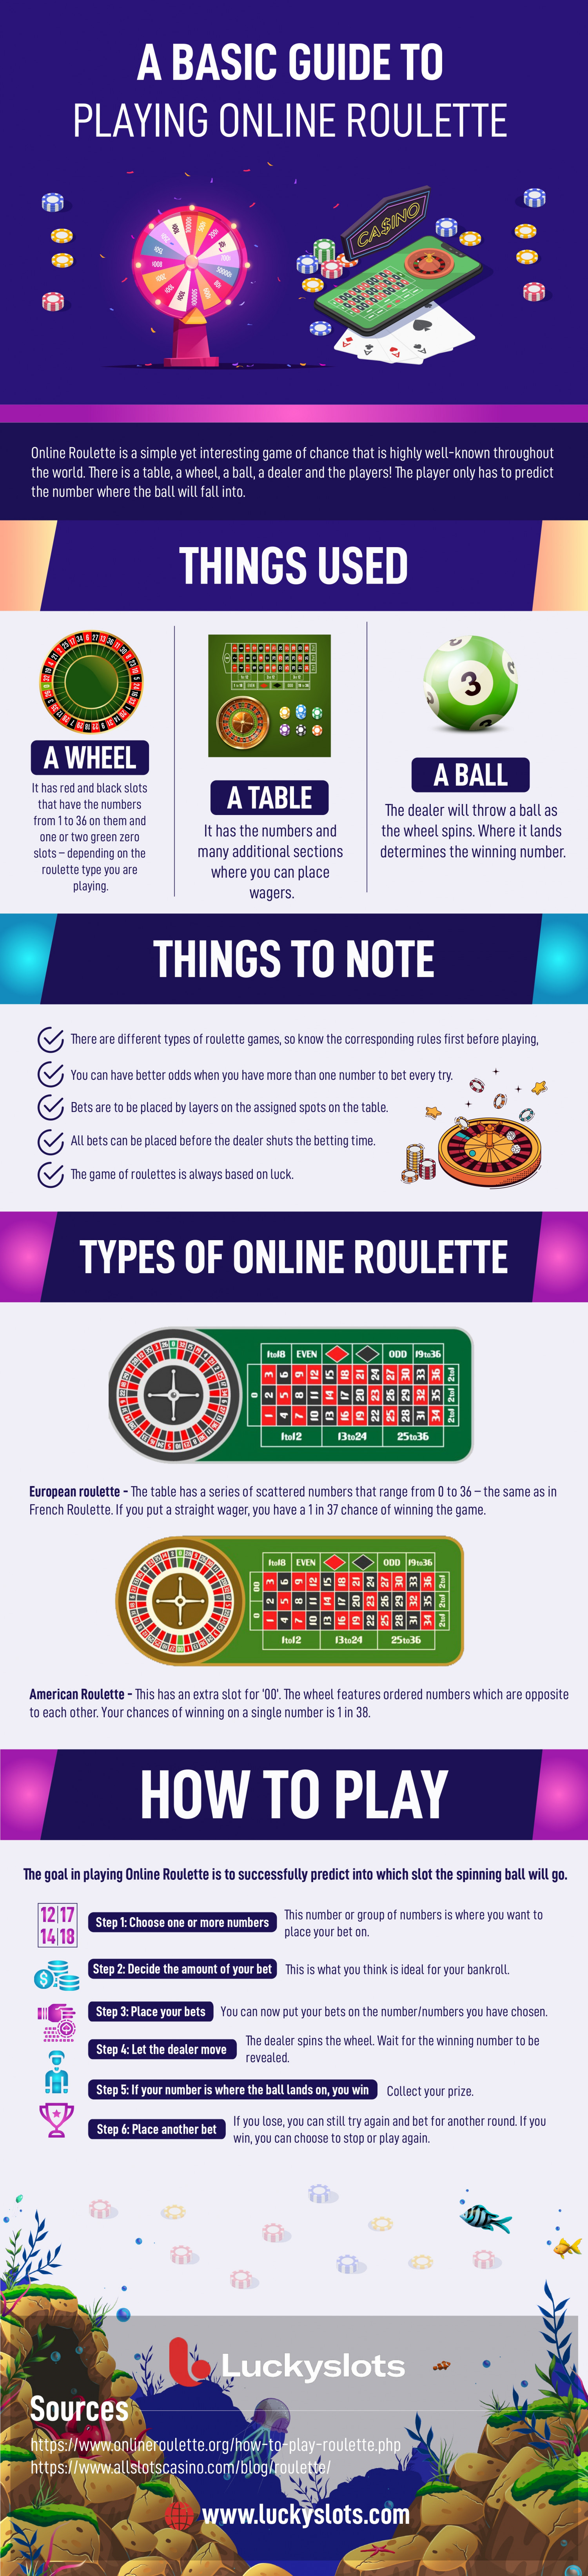 A Basic Guide To Playing Roulette Infographic